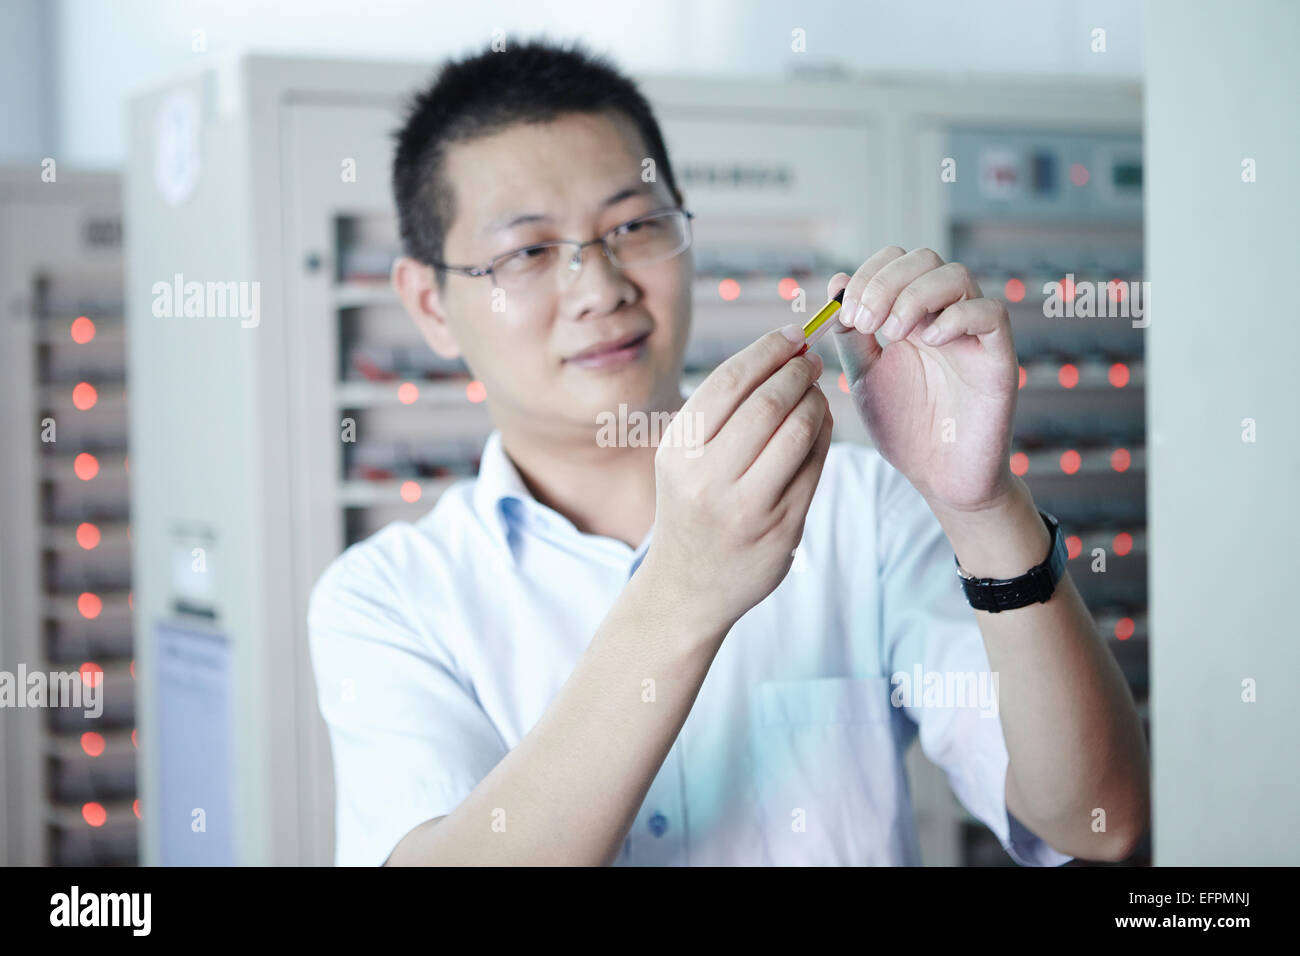 Worker looking at product in ecigarette factory - Stock Image